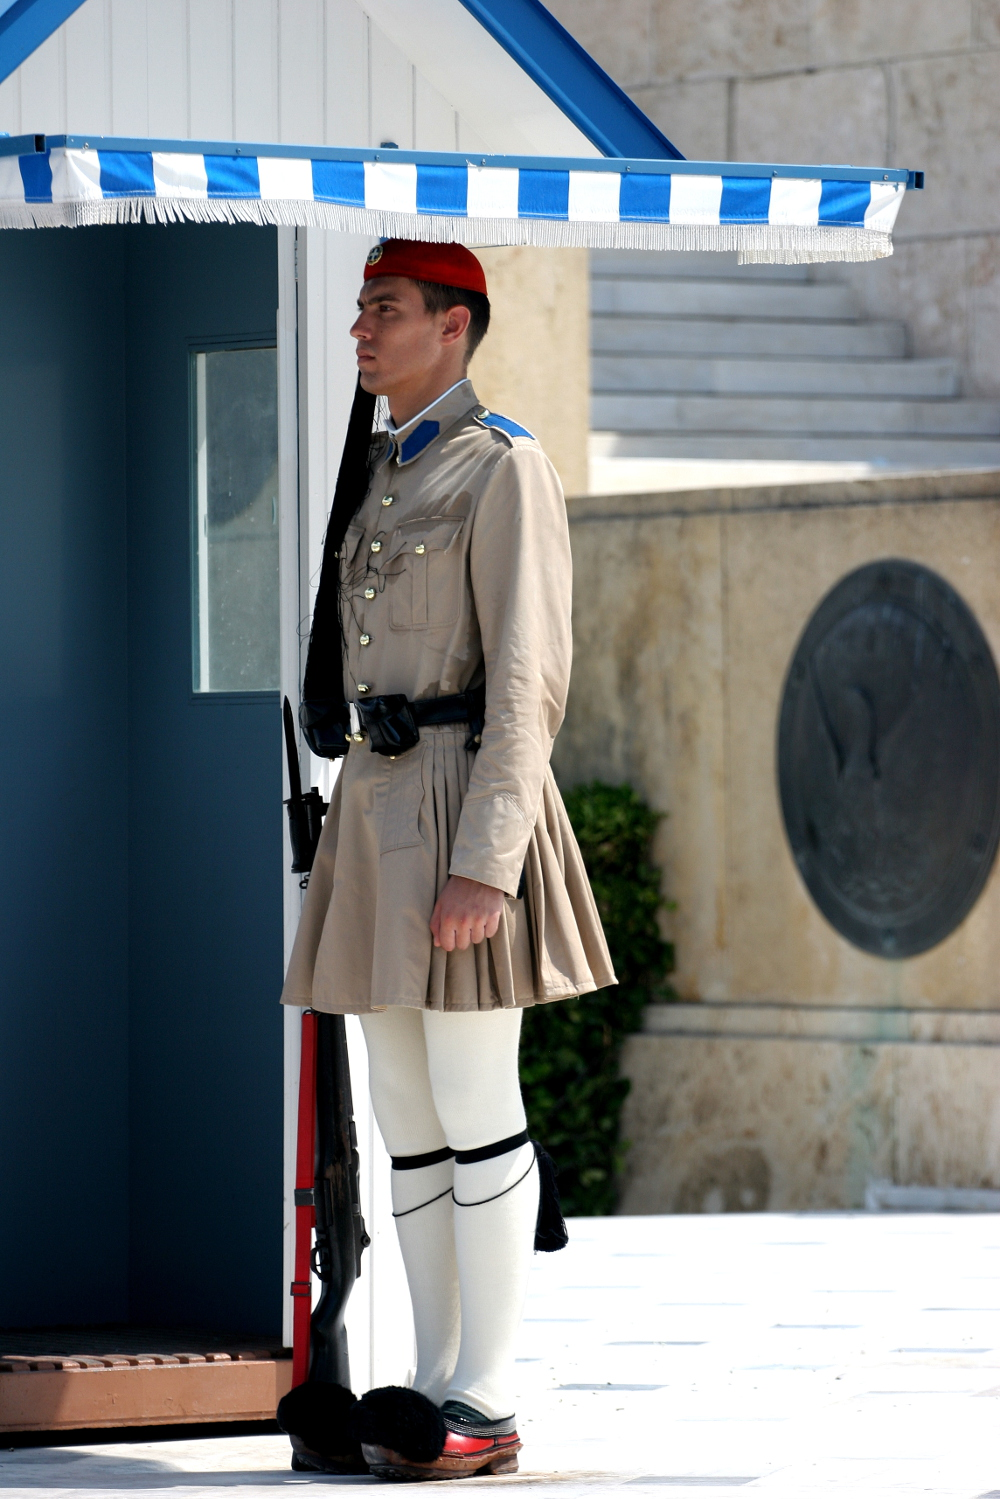 Greek solider outside Athens Parliament Double-Barrelled Travel